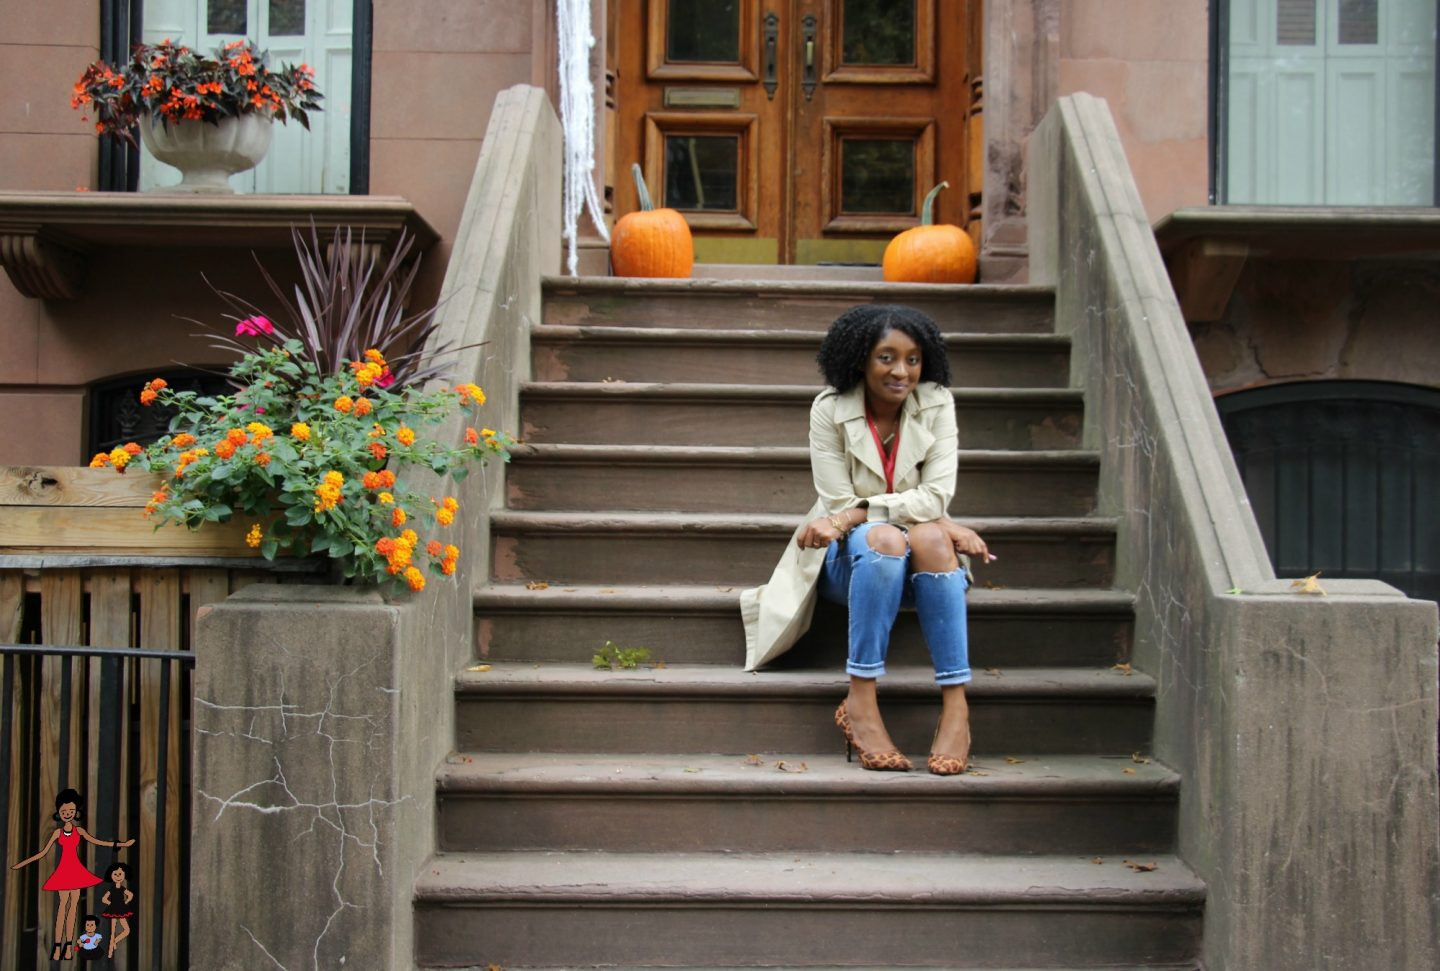 Casual Fall Outfit: Trench Coat and Jeans